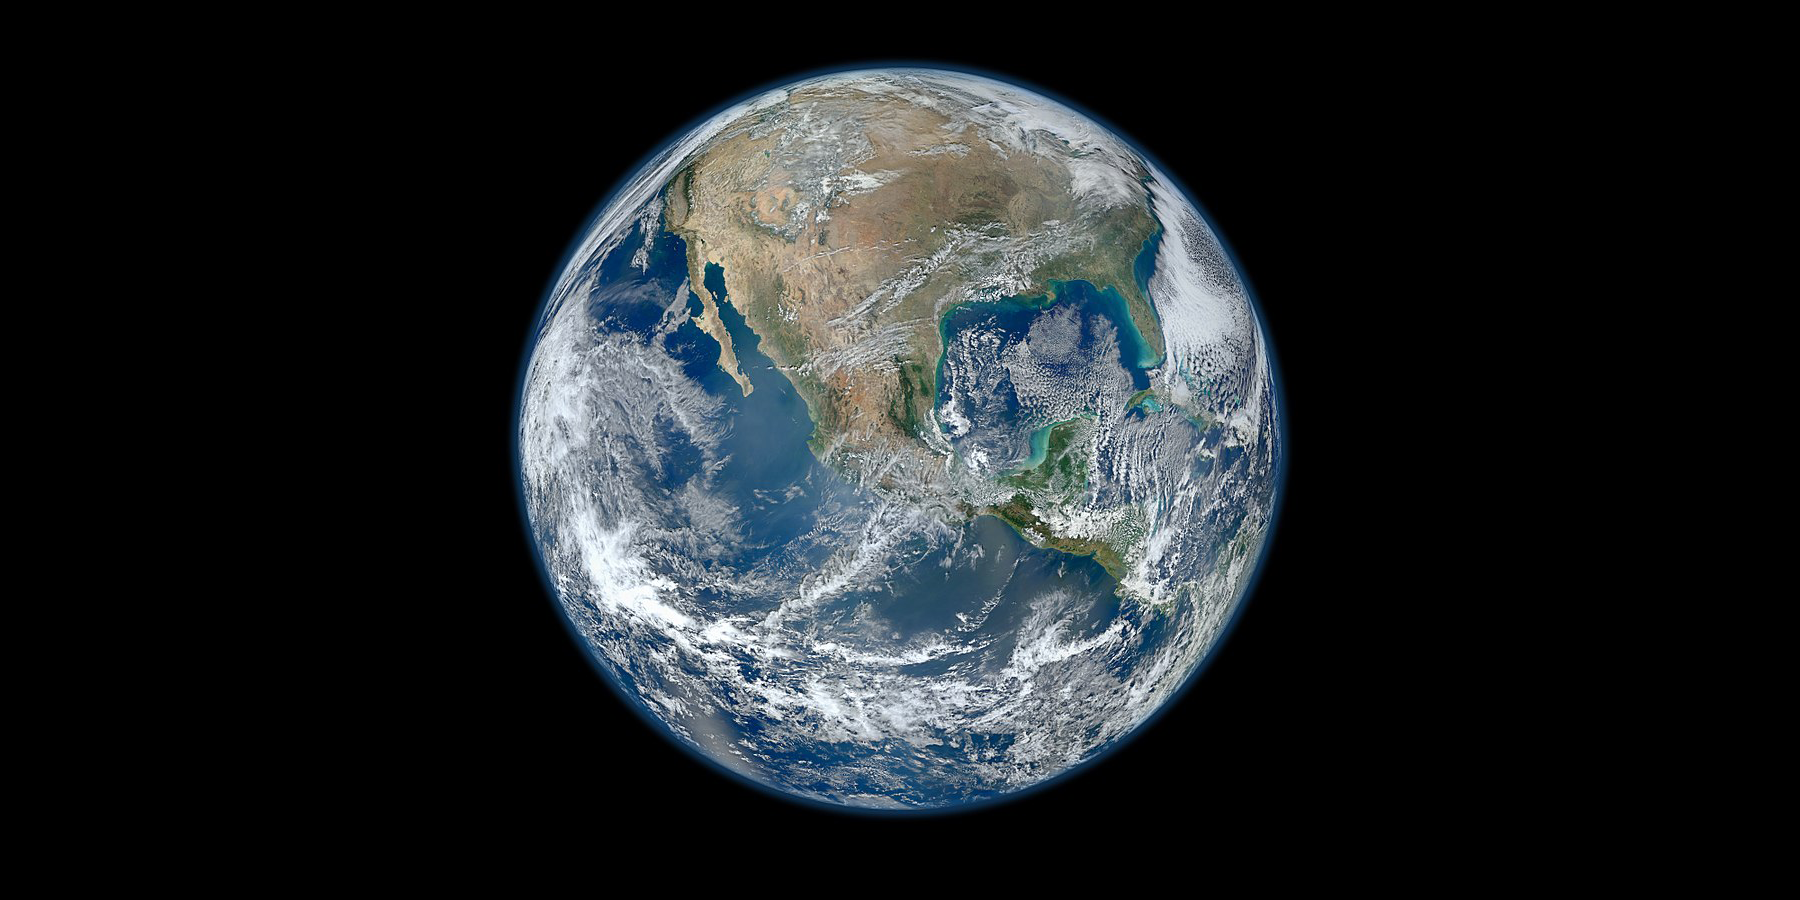 Photograph of Earth from space